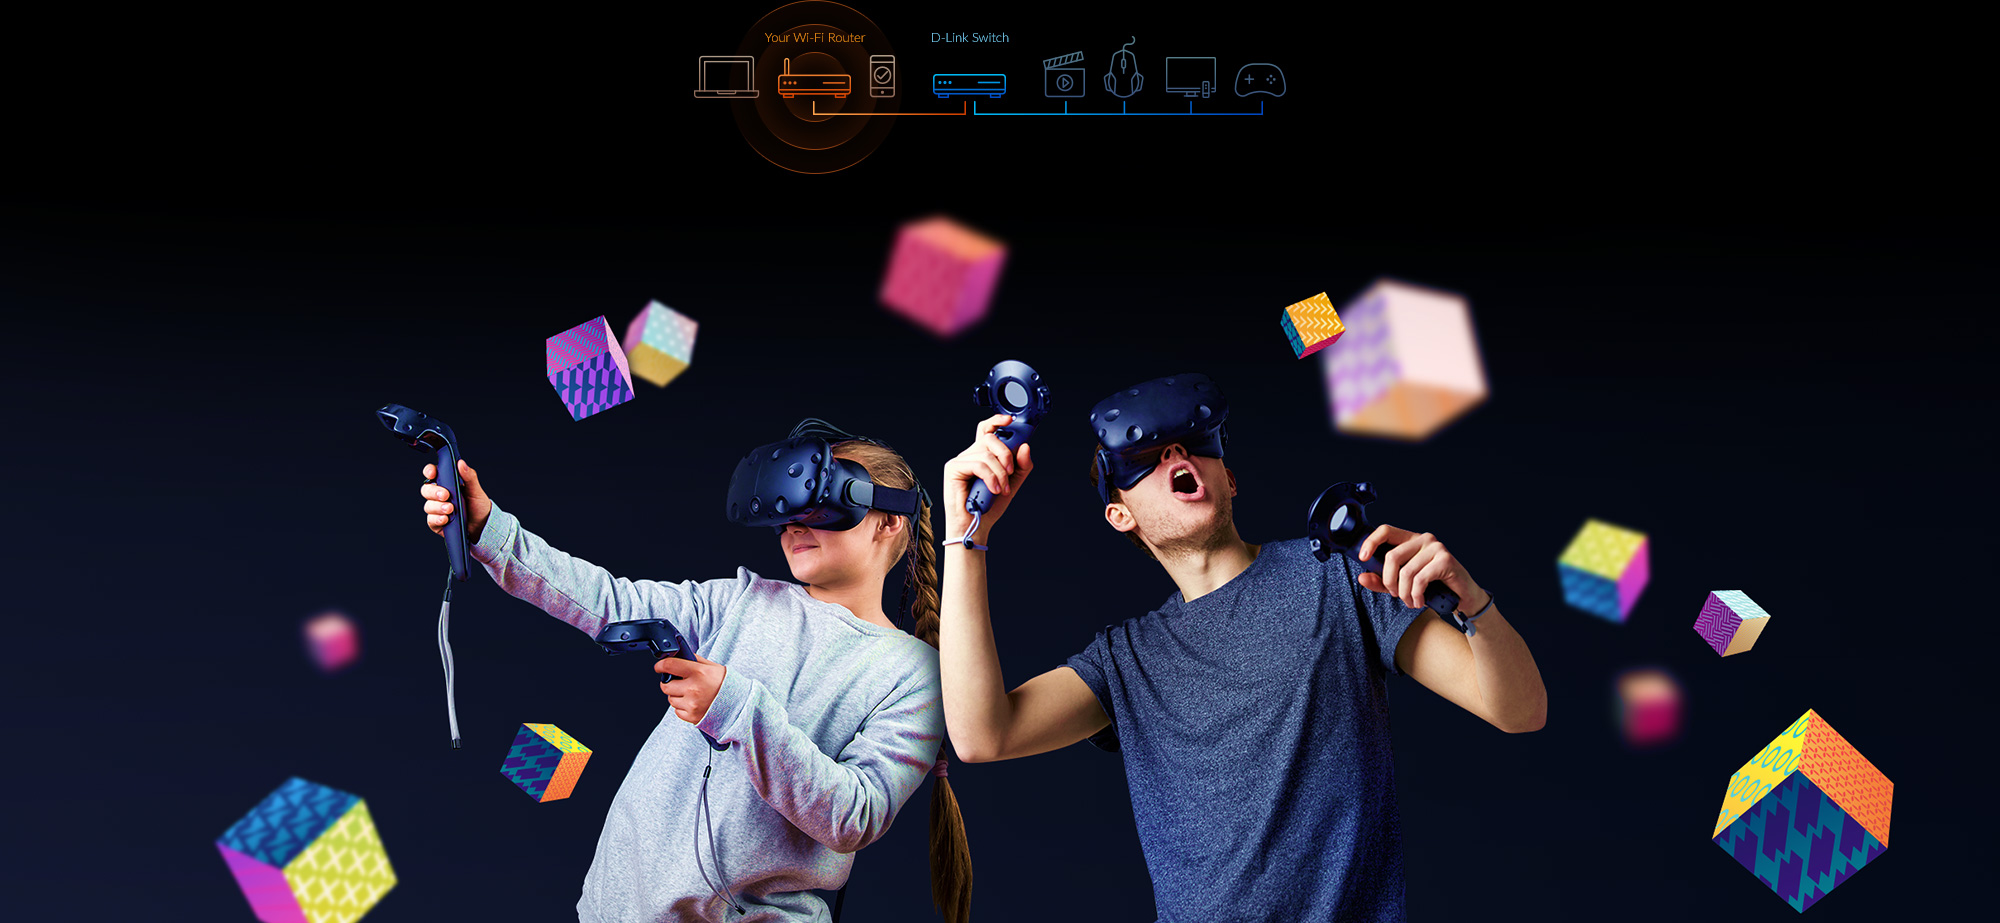 Two people playing VR games